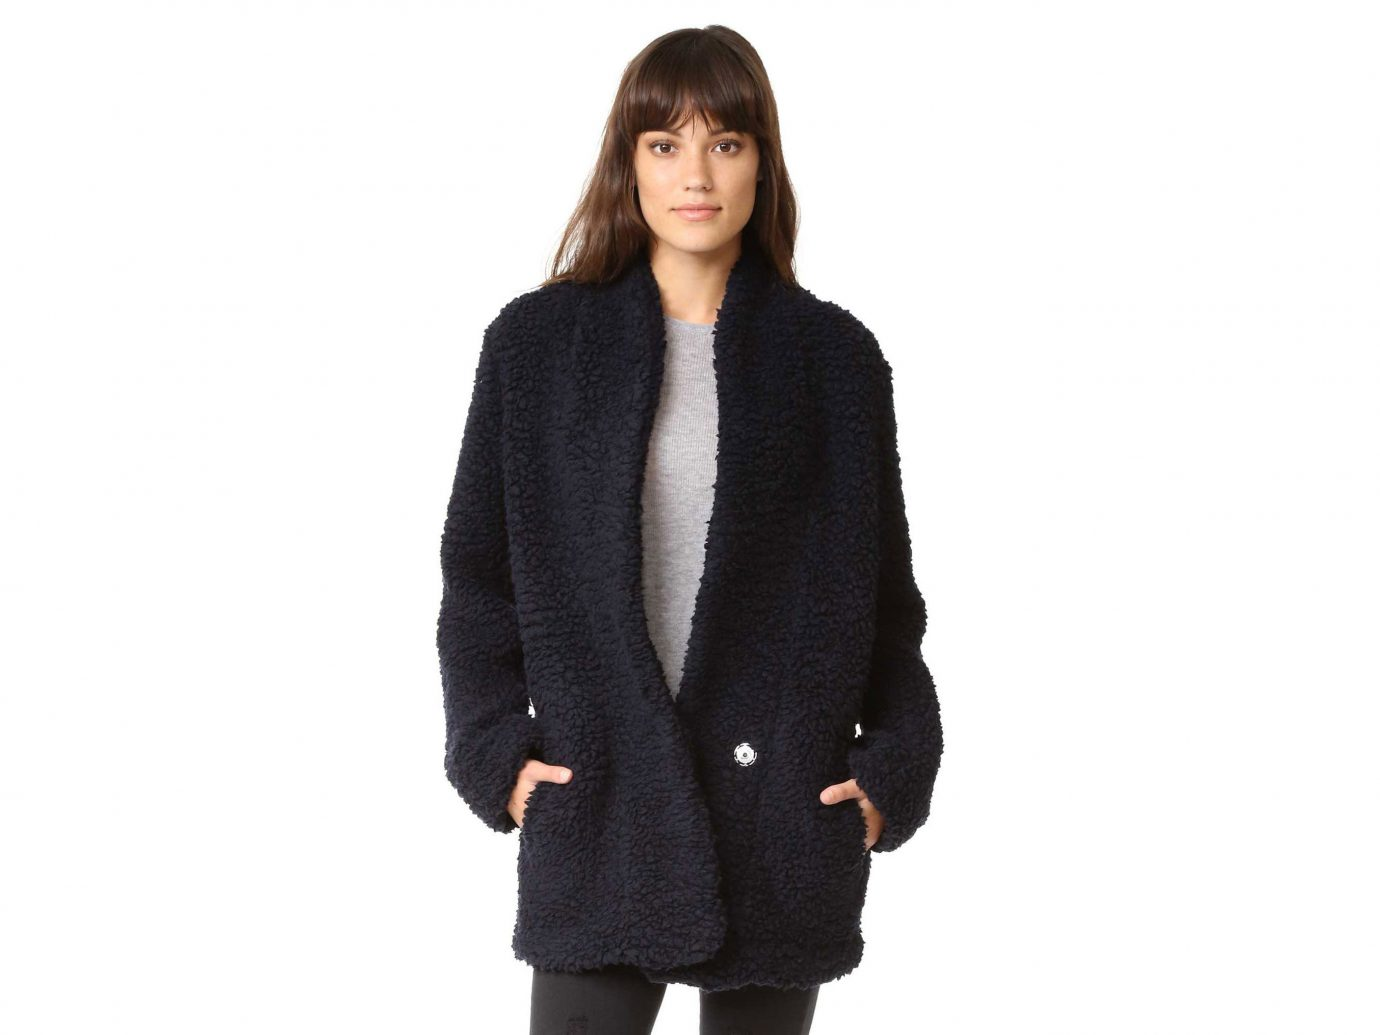 Style + Design person clothing woman outerwear overcoat coat standing wool fur posing woolen hood jacket textile sleeve sweater collar fur clothing lady